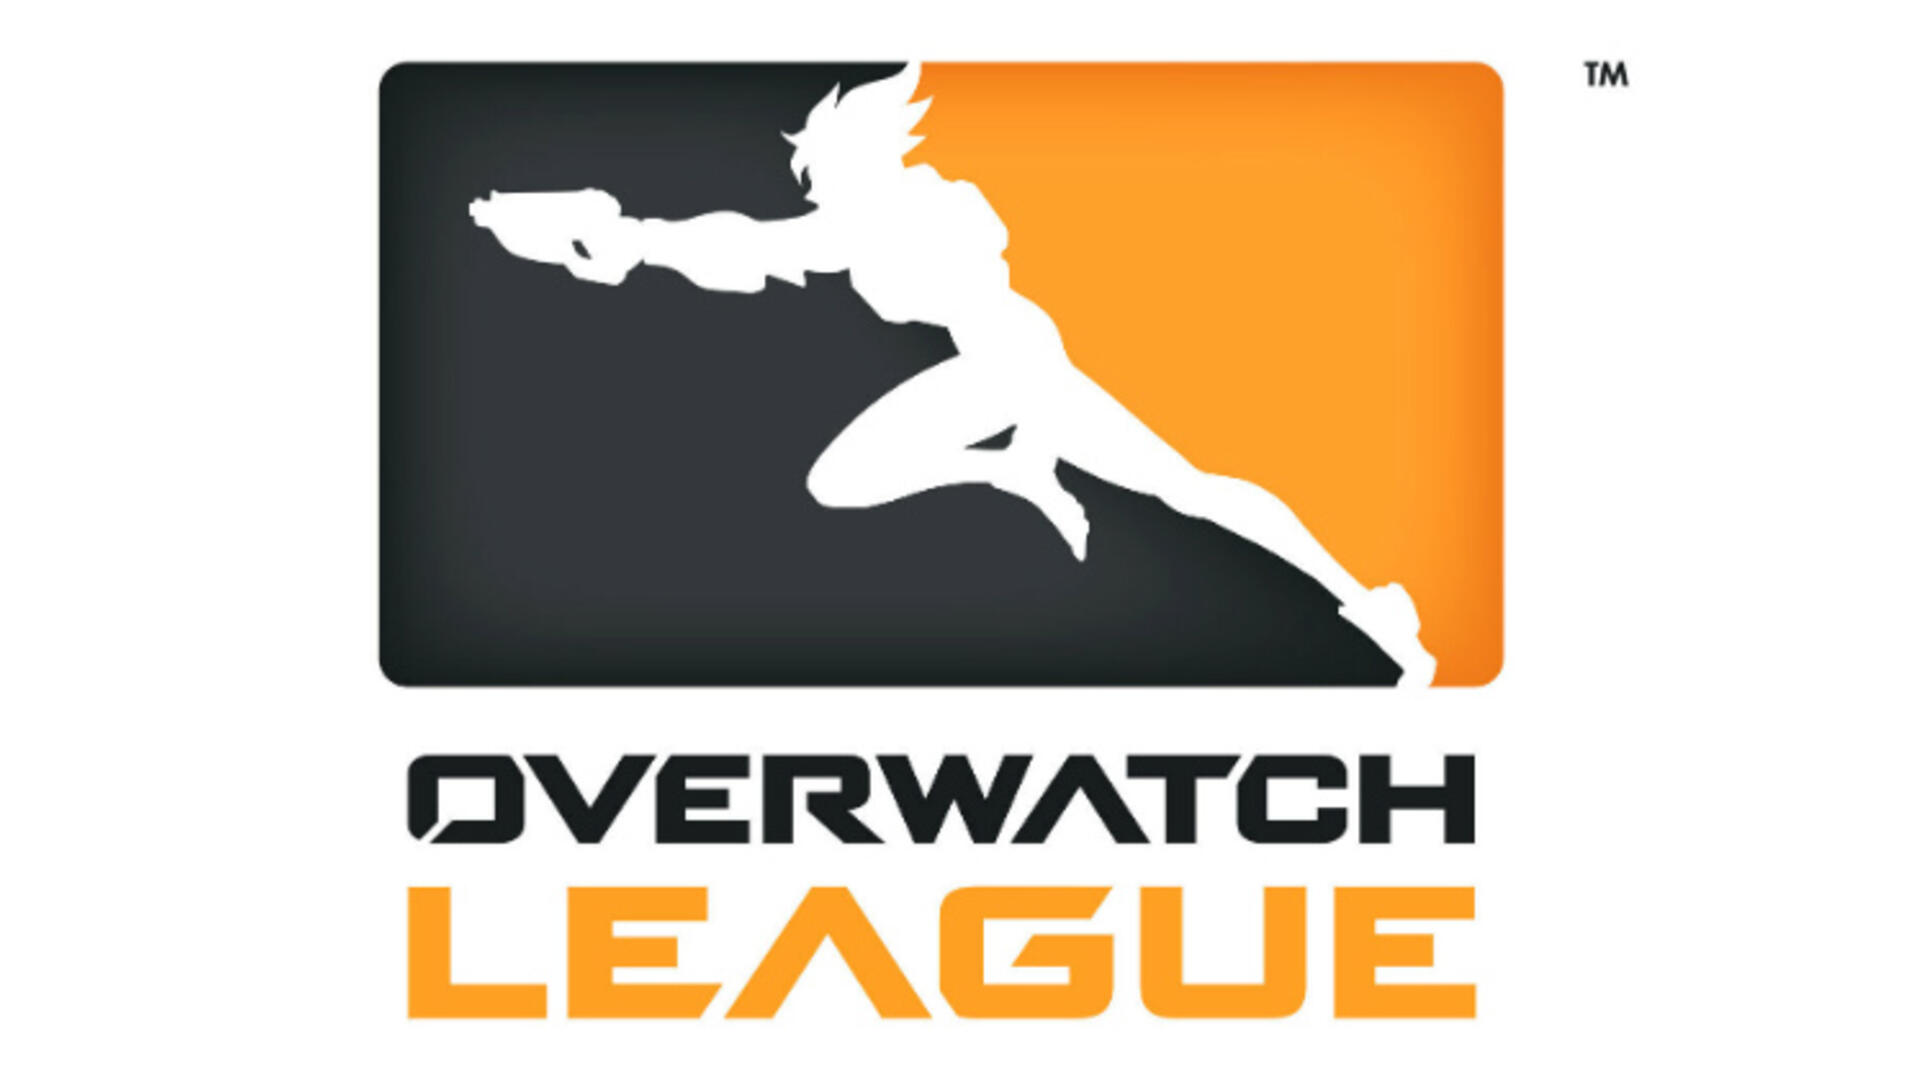 Blizzard Takes From the NFL, NBA, and MLB With Overwatch League